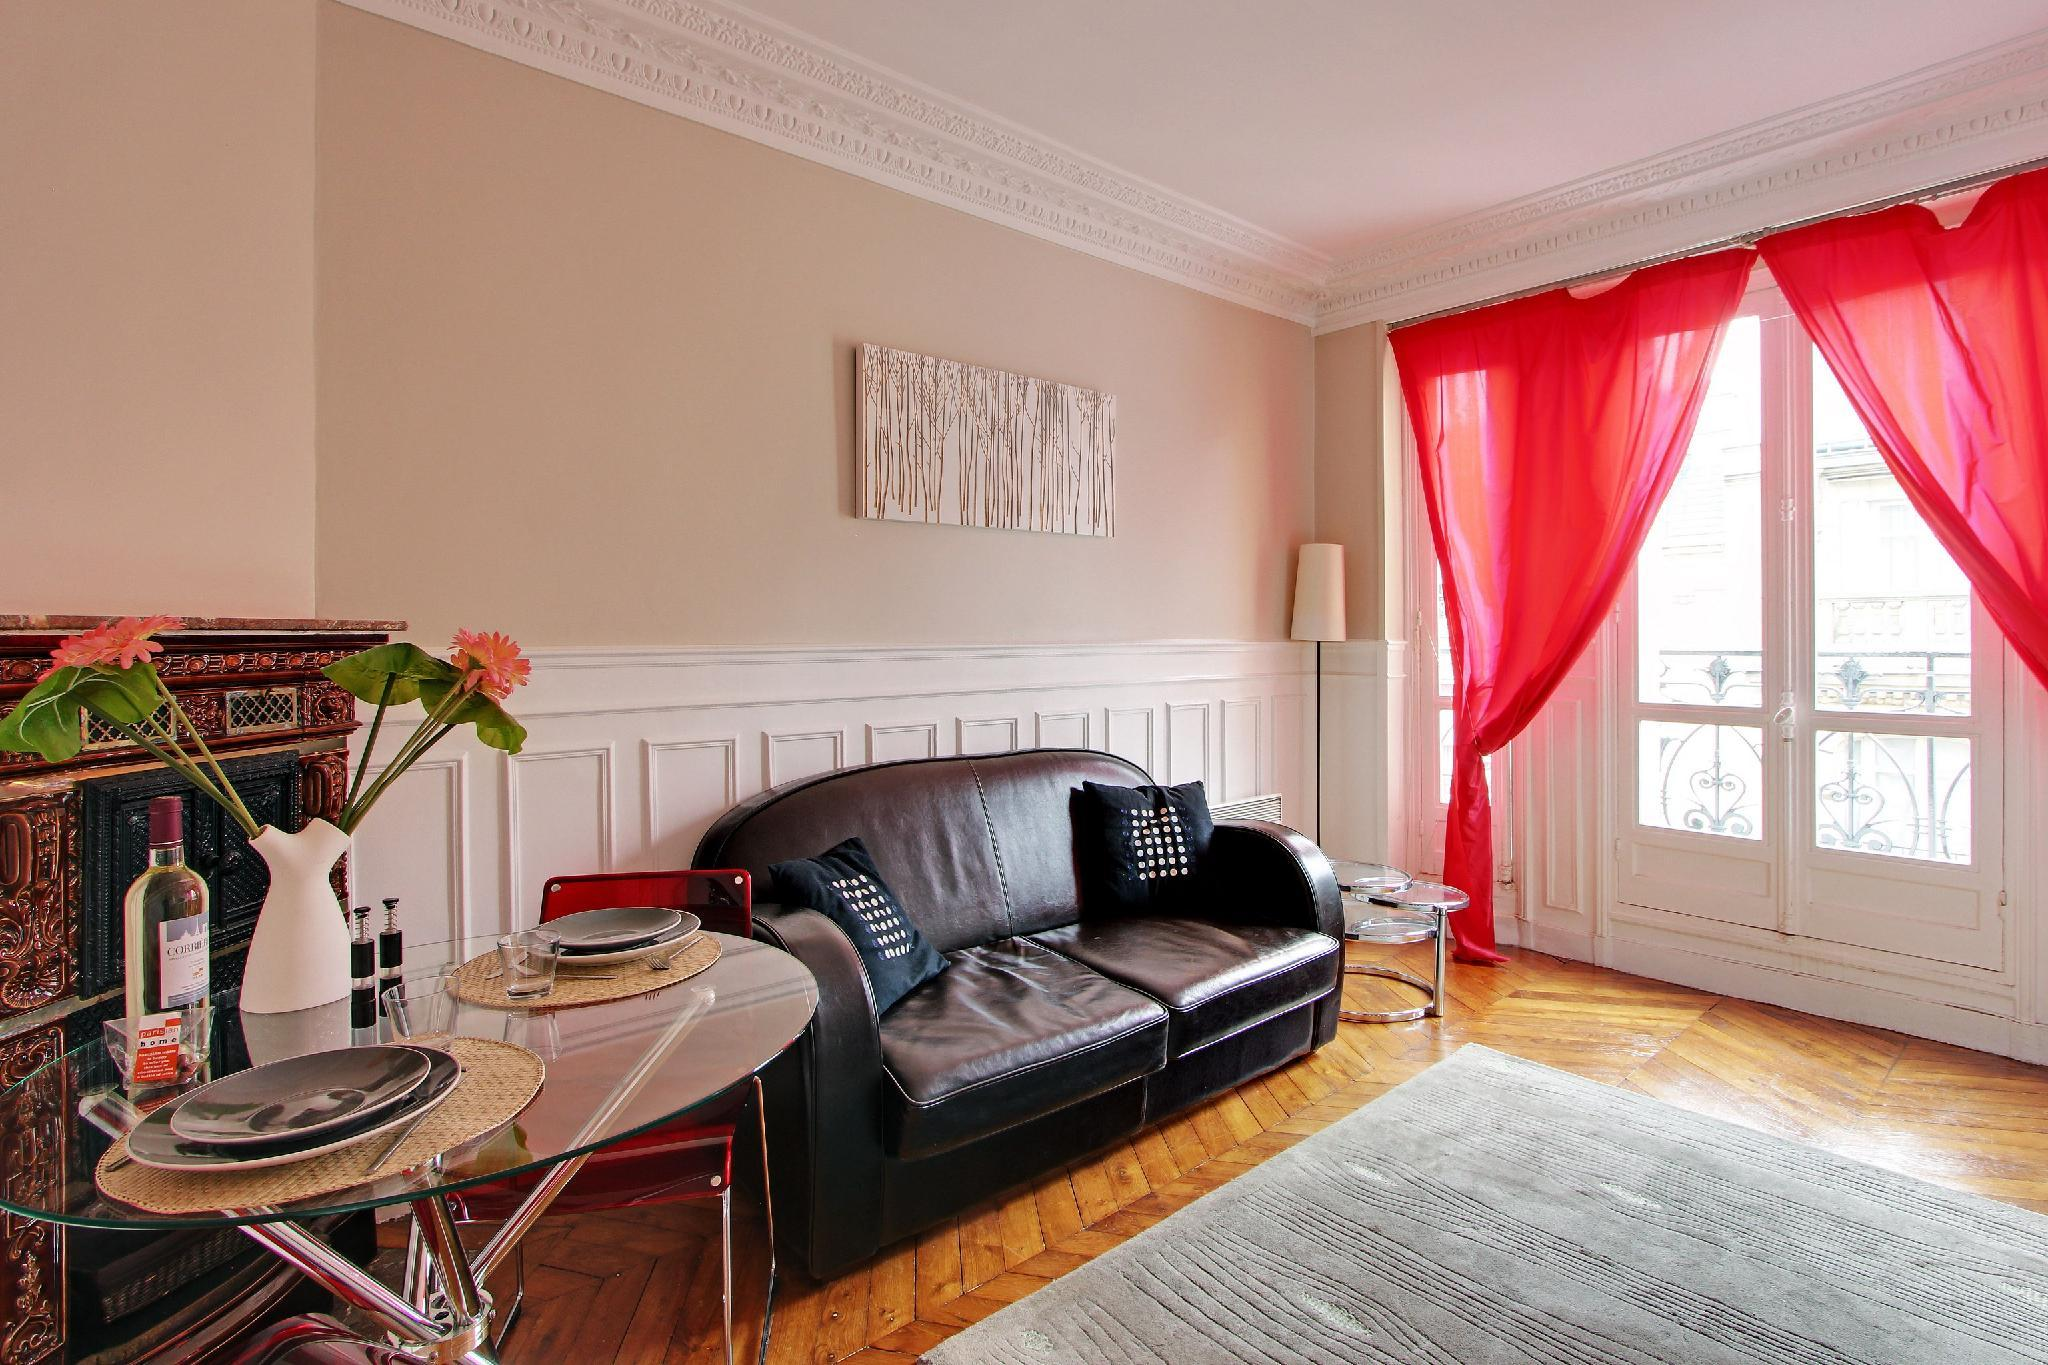 117172 - Comfortable apartment for 4 people